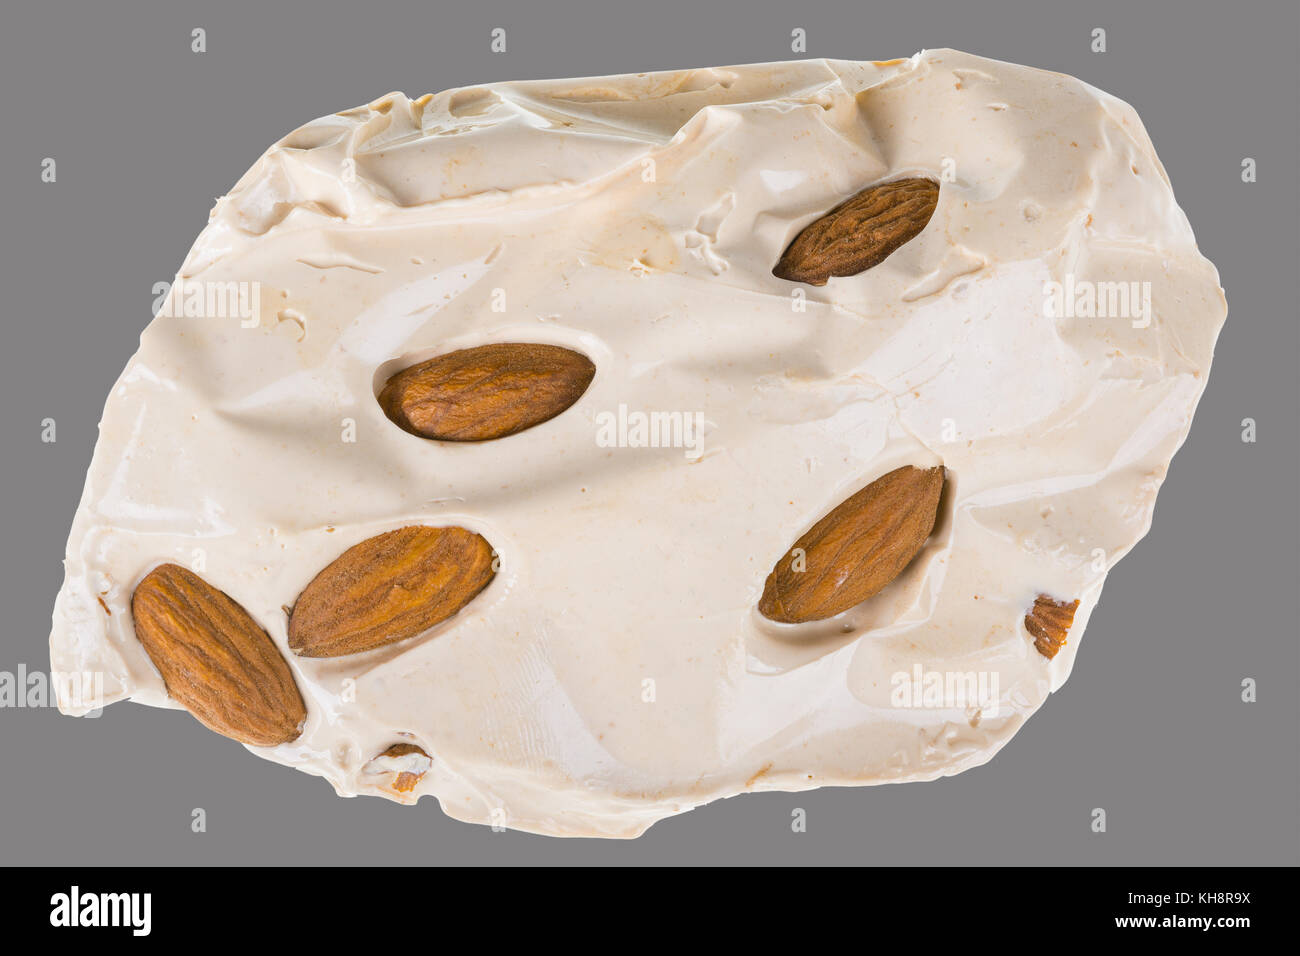 Turkish honey nougat with almonds. Piece of yummy sweet candy isolated on gray background. - Stock Image